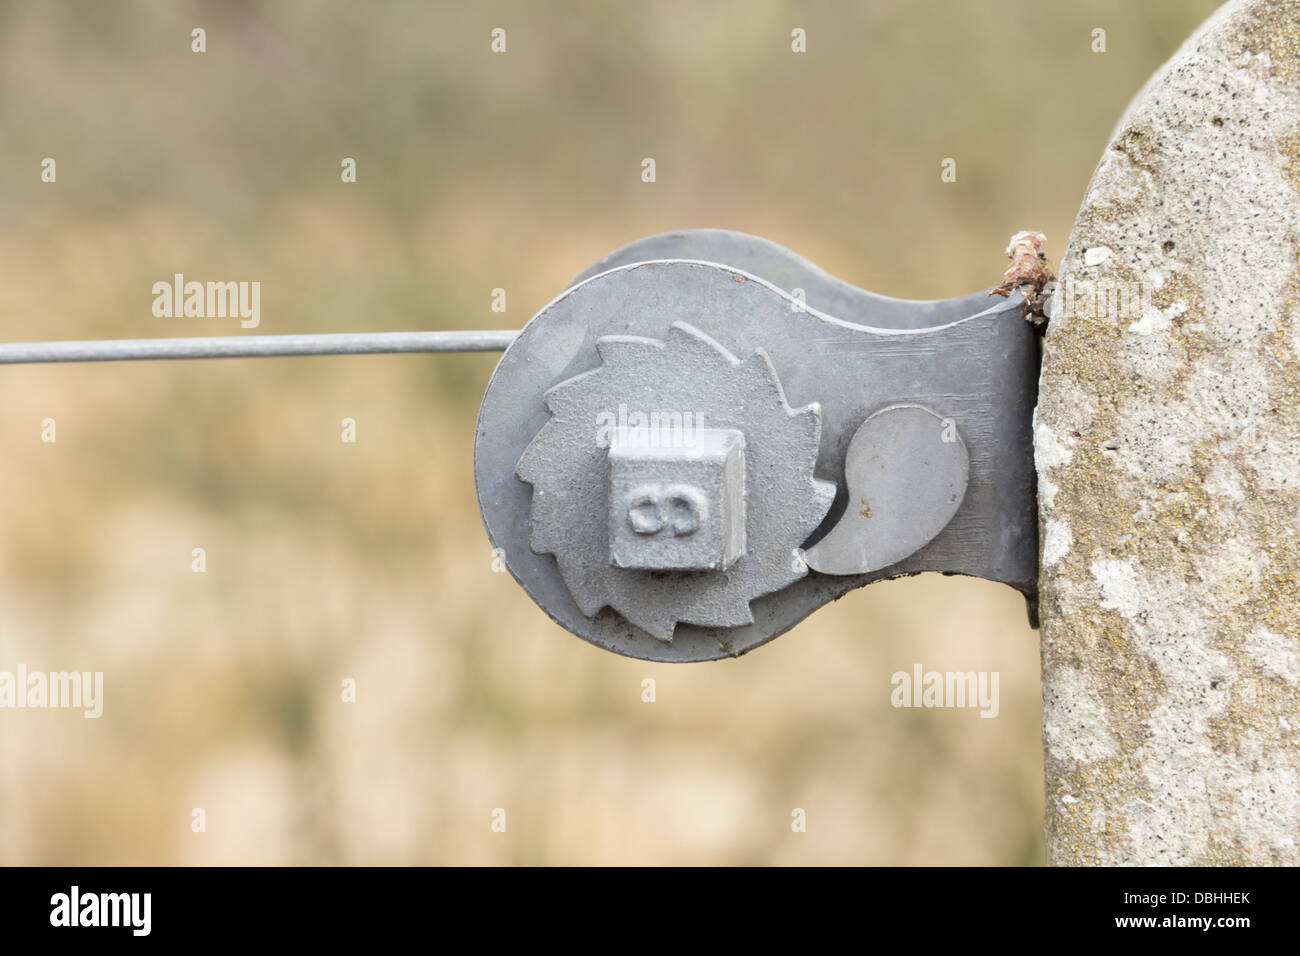 Fence Wire Tensioner Stock Photos & Fence Wire Tensioner Stock ...